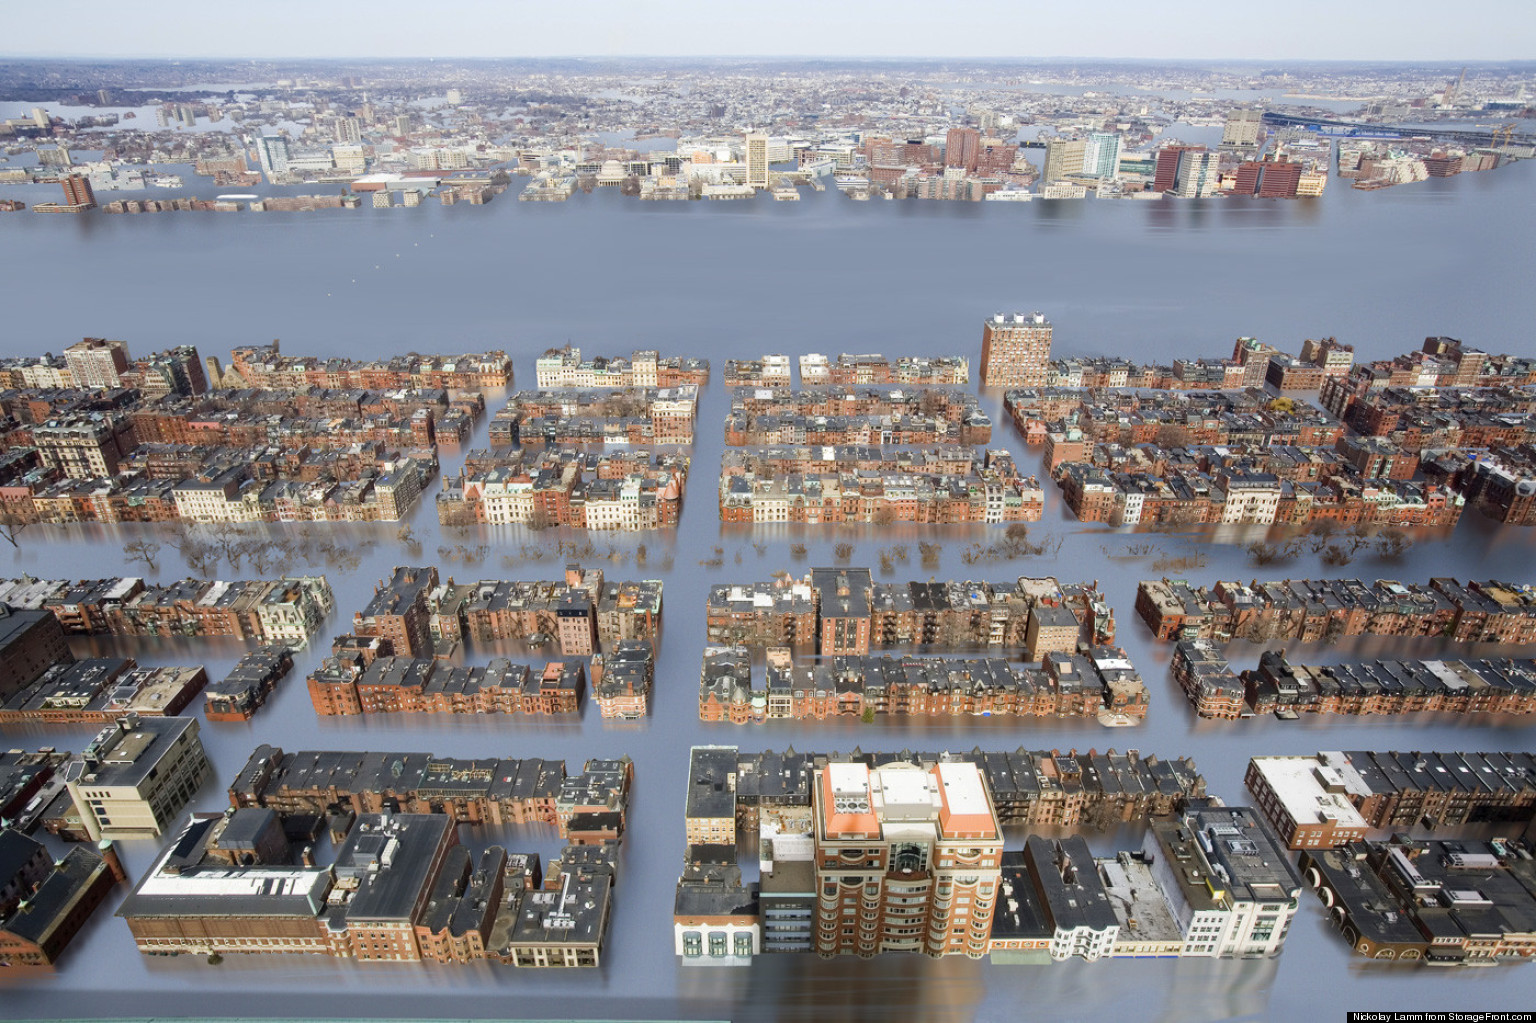 Artist Shows What U.S. Cities Will Look Like If Sea Levels Rise